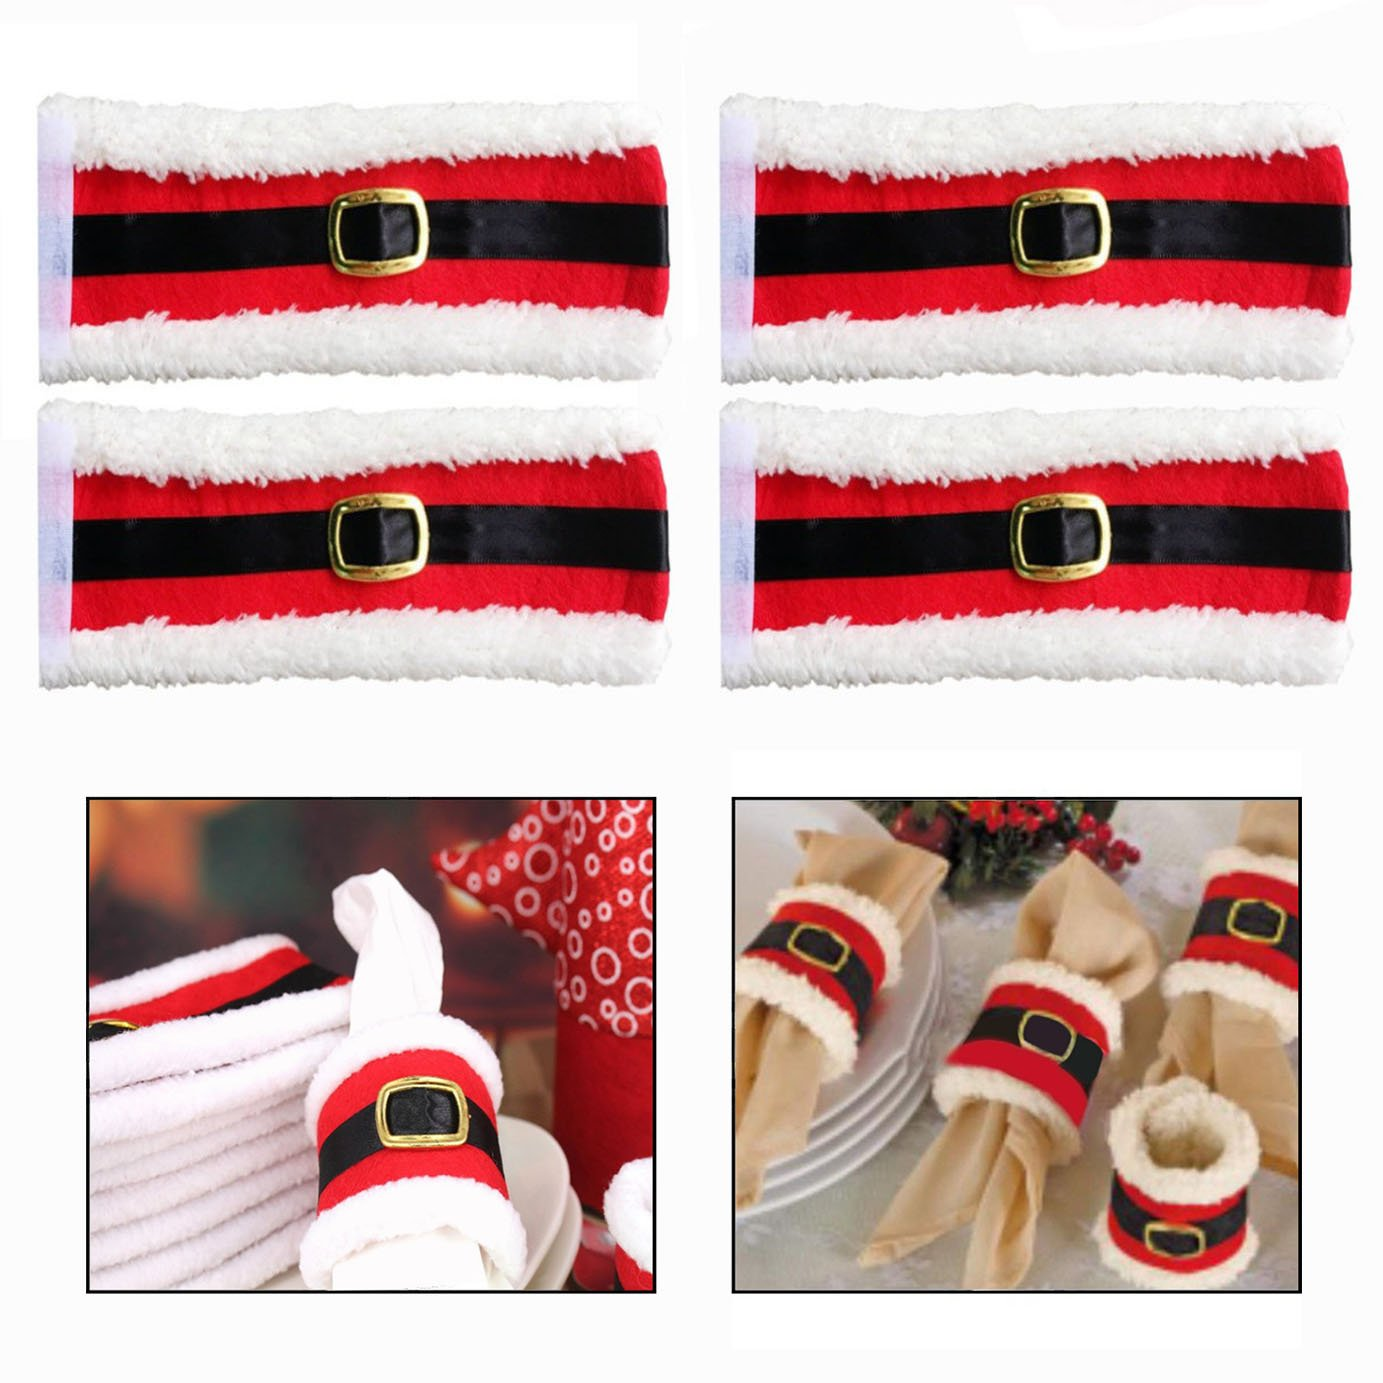 OFKPO Christmas Napkin Rings Holders Xmas Dinner Table Decorations Kitchen Dining Restaurant Hotel Table Decor